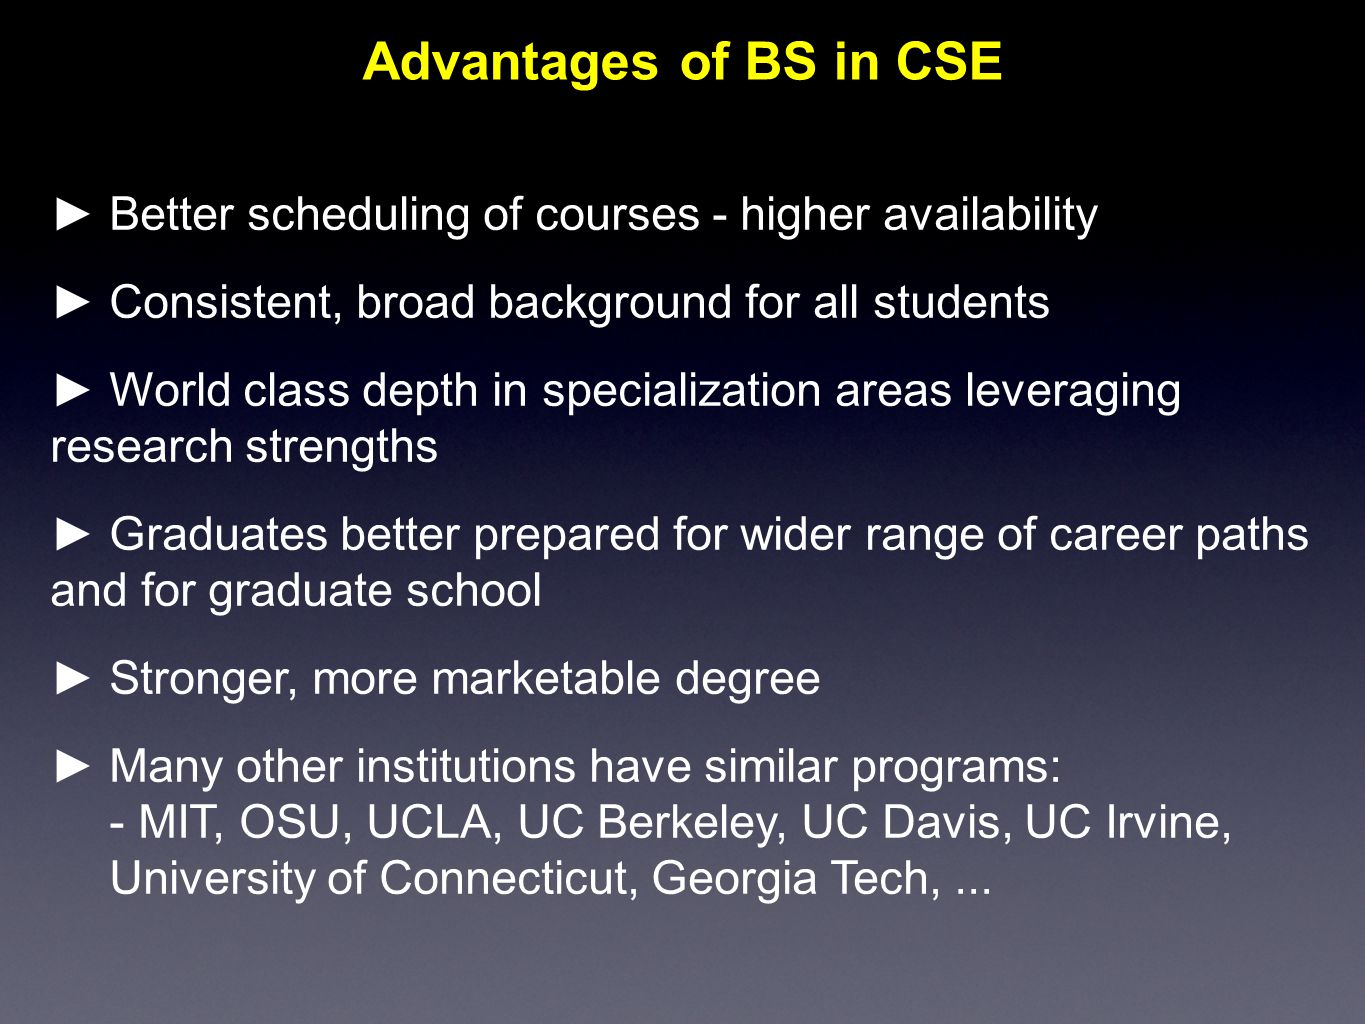 ► Better scheduling of courses - higher availability ► Consistent, broad background for all students ► World class depth in specialization areas leveraging research strengths ► Graduates better prepared for wider range of career paths and for graduate school ► Stronger, more marketable degree ► Many other institutions have similar programs:  MIT, OSU, UCLA, UC Berkeley, UC Davis, UC Irvine, University of Connecticut, Georgia Tech,...